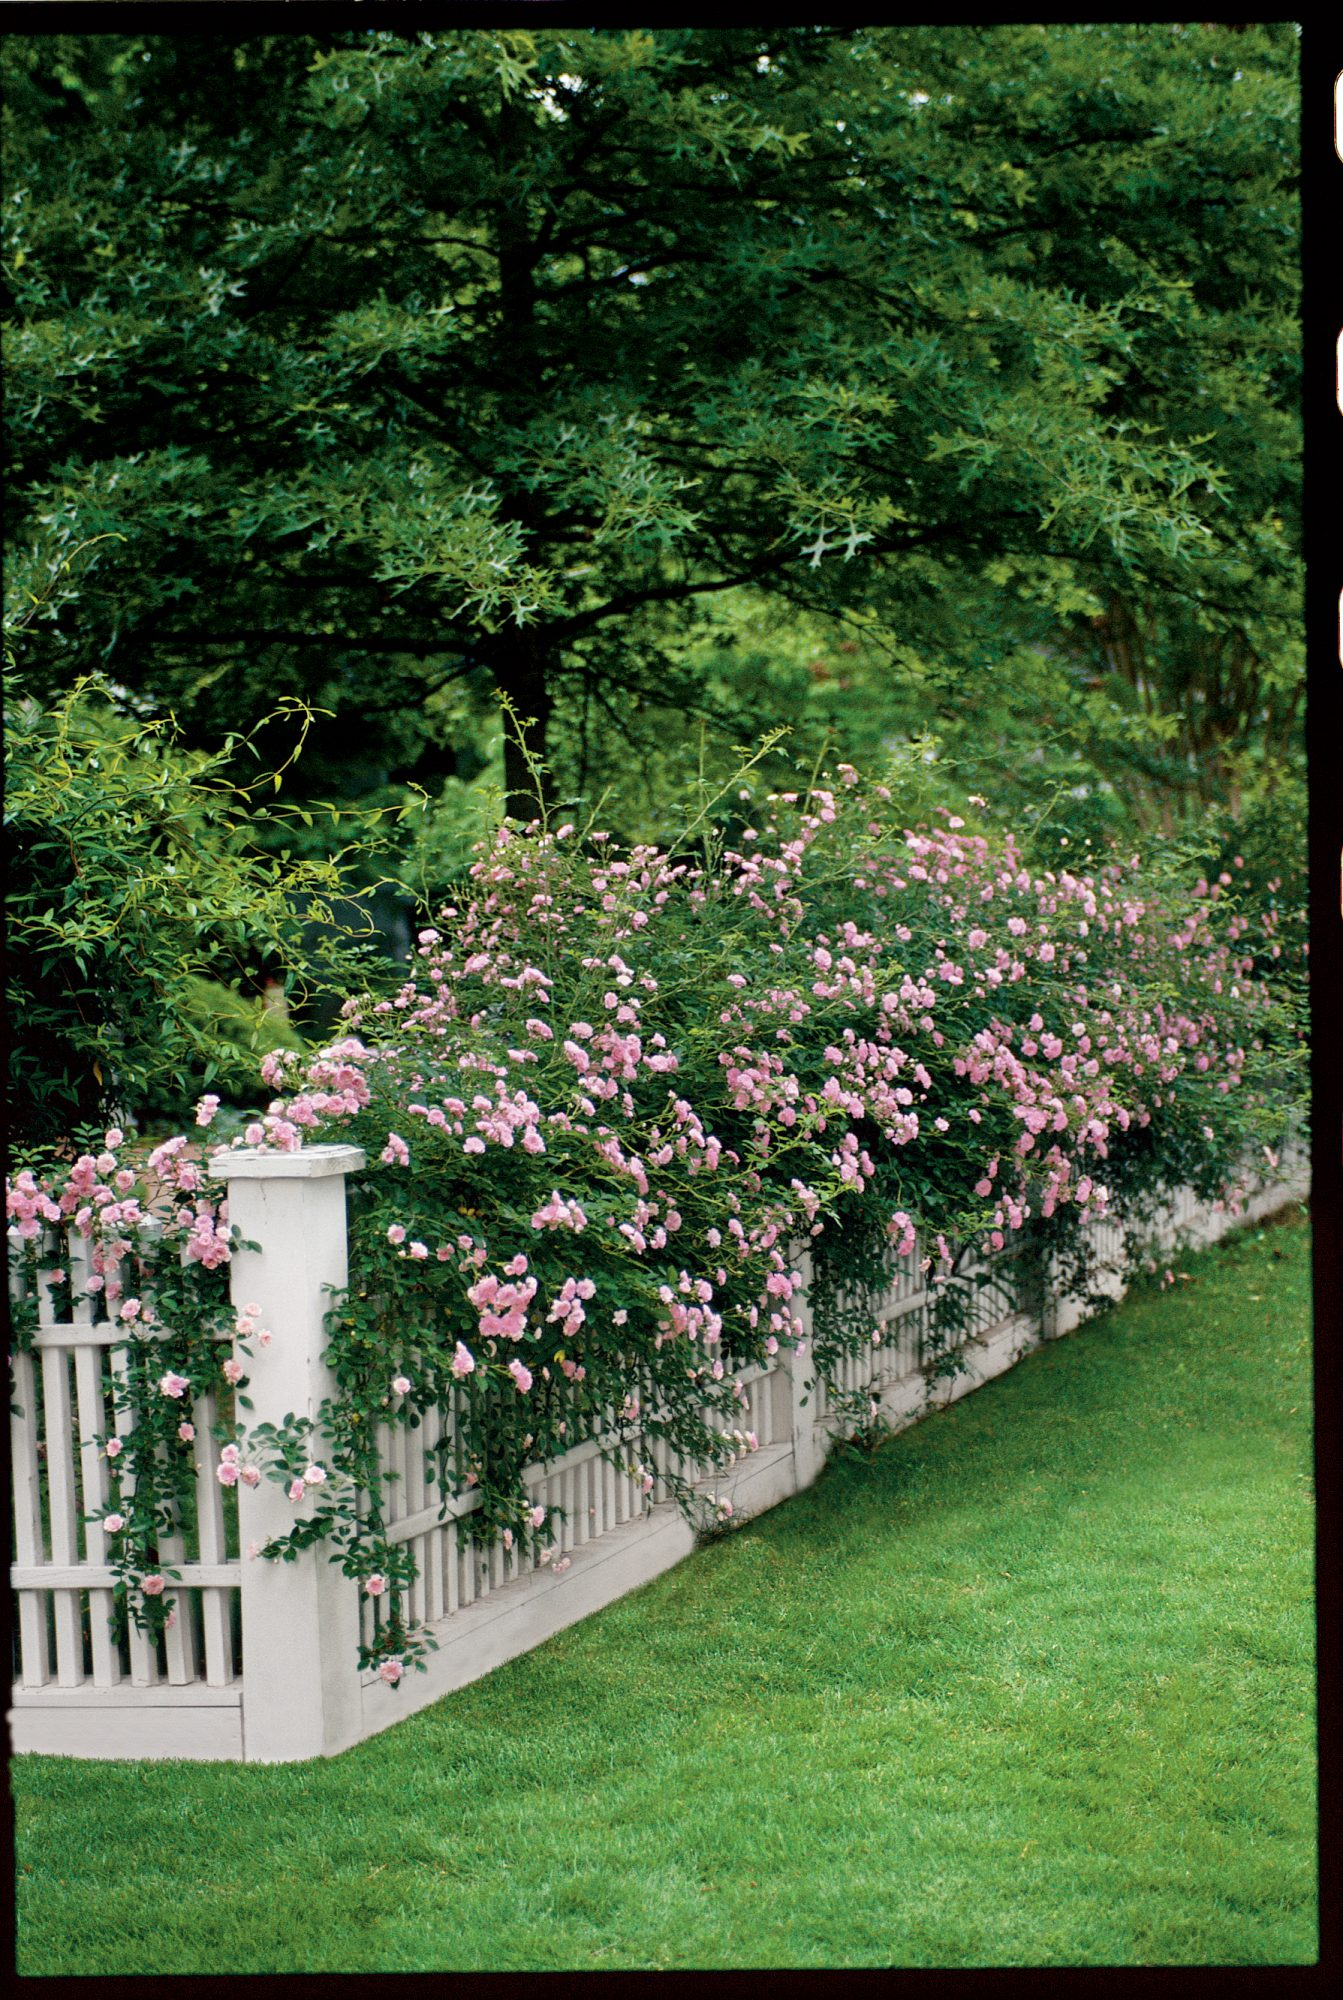 Easy Growing: Climbing Roses